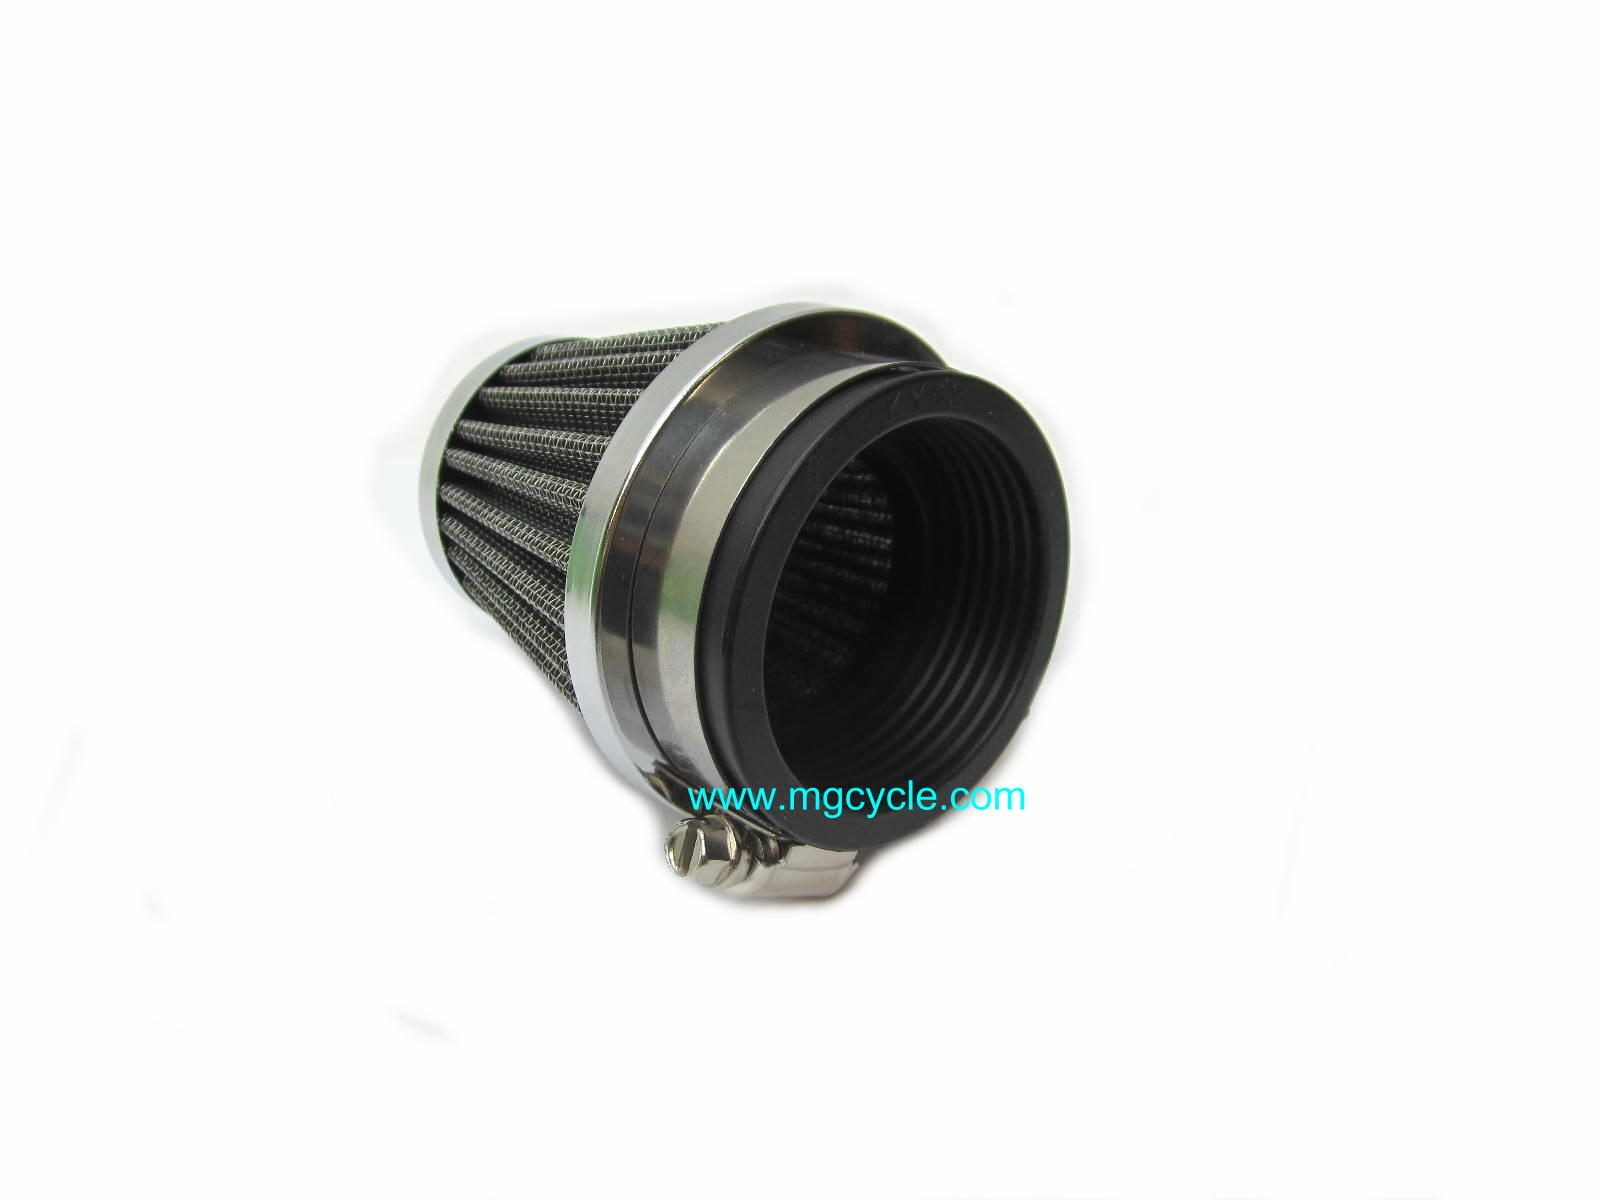 conical air filter pod for PHM40 - Click Image to Close